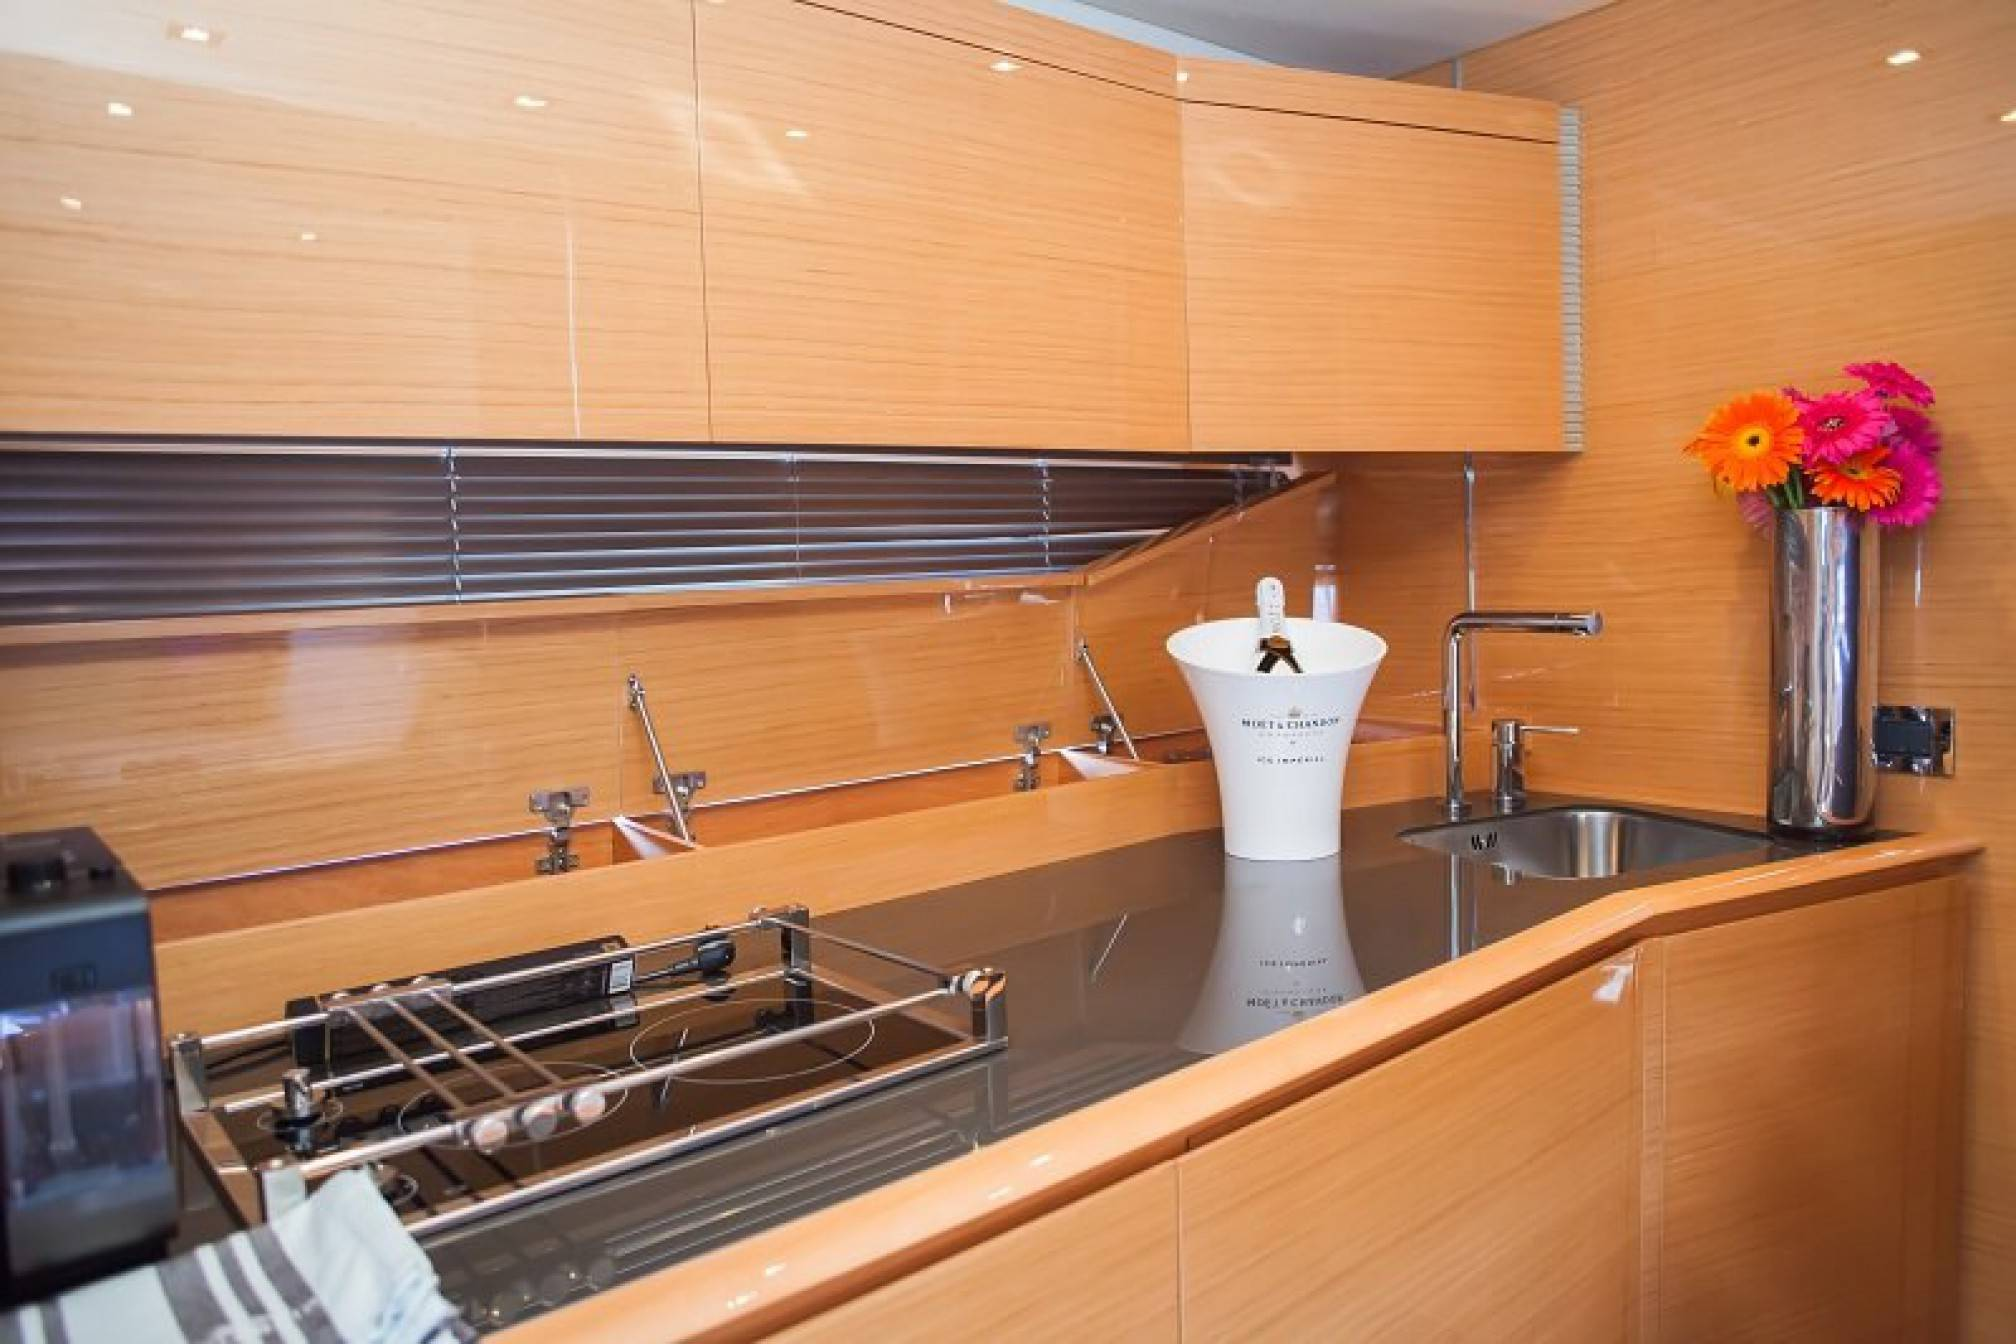 Azimut Atlantis 54 yacht charter galley